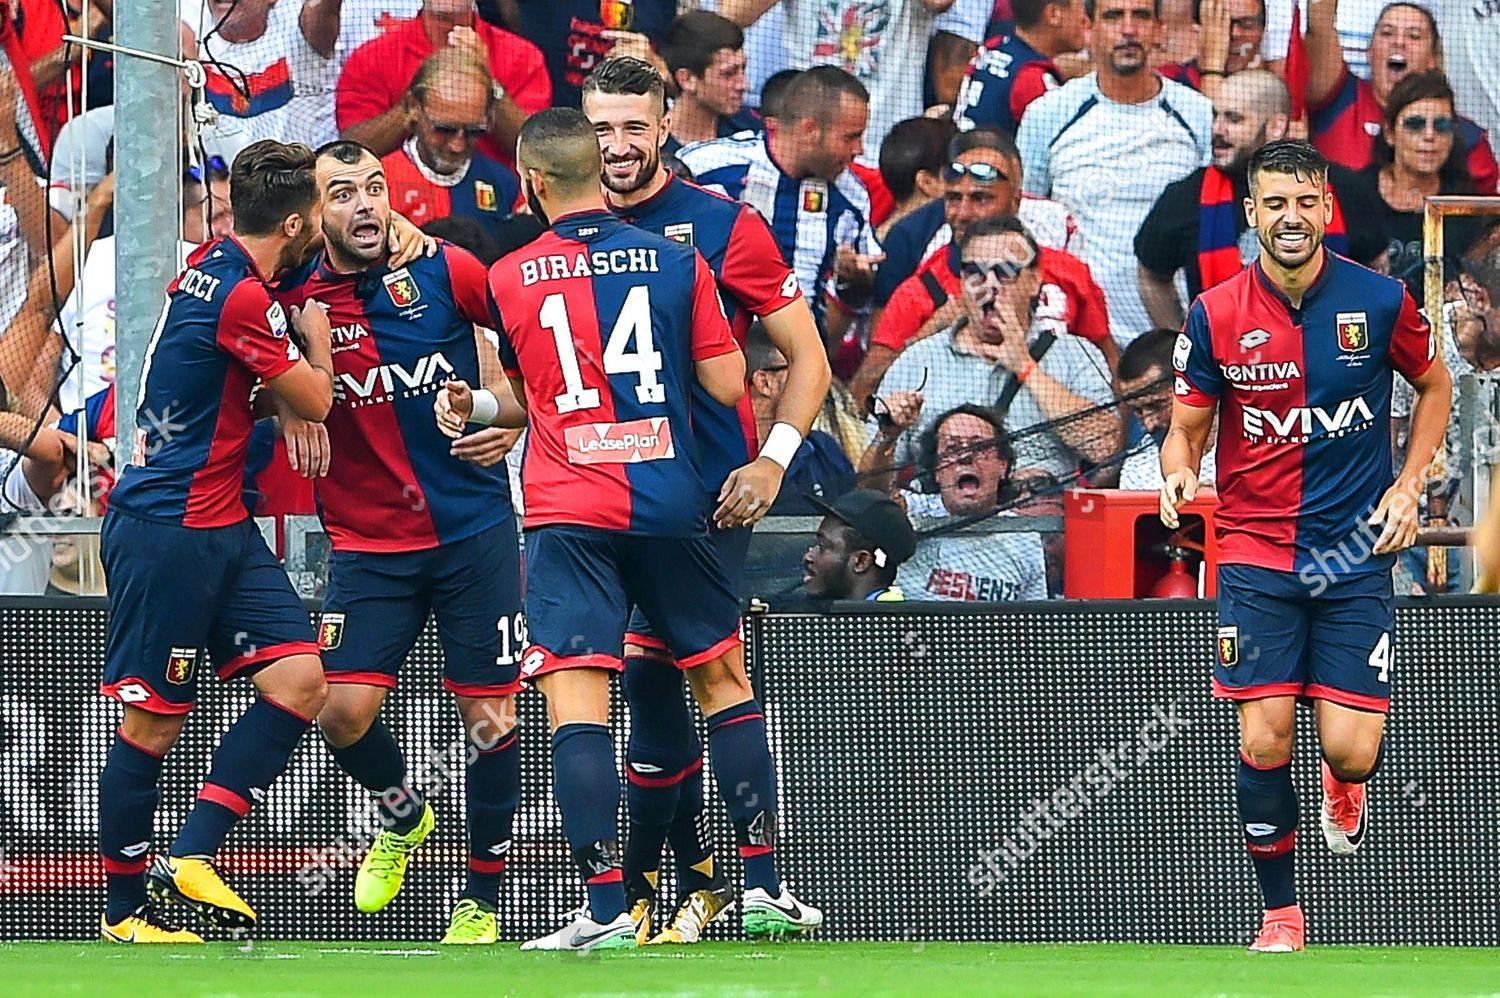 Genoa players celebrate their 10 lead during Editorial Stock Photo - Stock  Image   Shutterstock